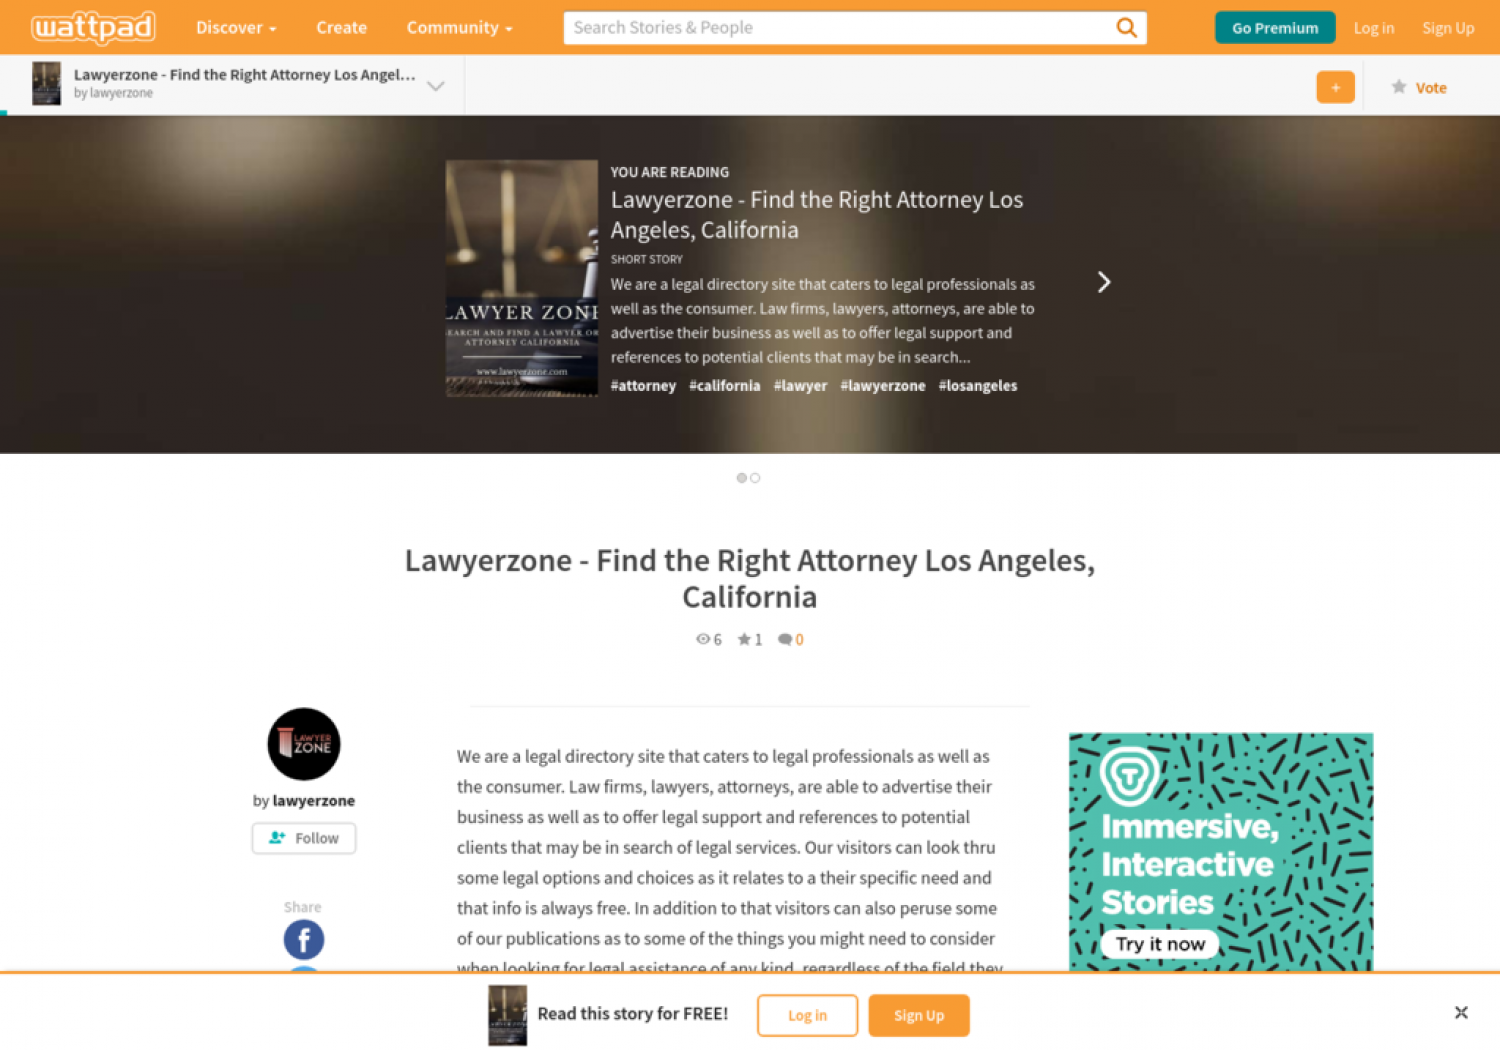 Lawyerzone - Find the Right Attorney Los Angeles, California Infographic